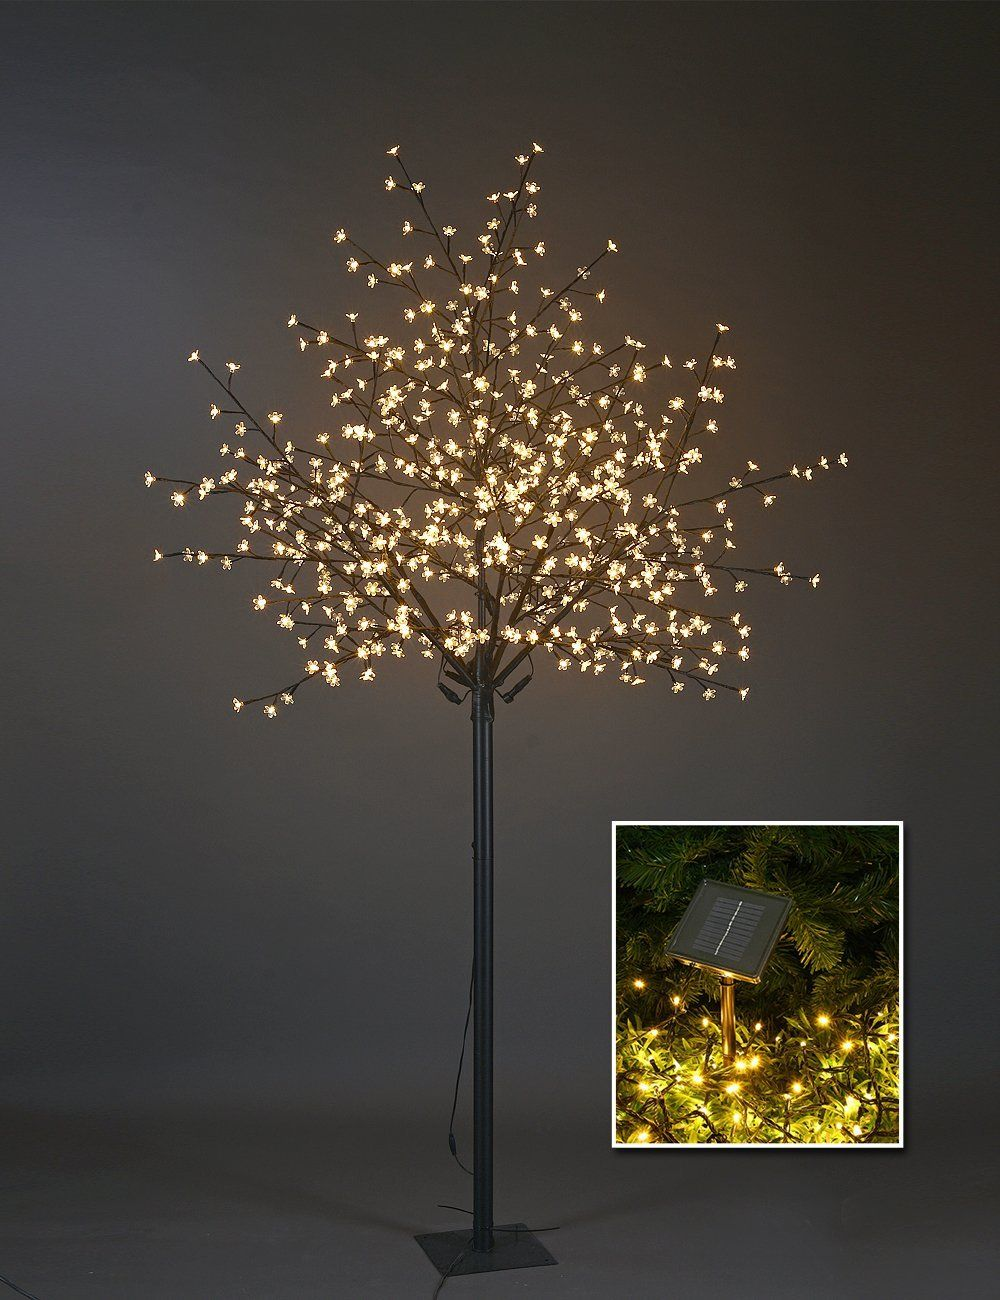 Lightshare Update 8ft 600l Led Cherry Blossom City Tree Plus A Free Gift 70l Led Solar Decoration Light For Home Decor City Decor City Tree Cherry Blossom Tree